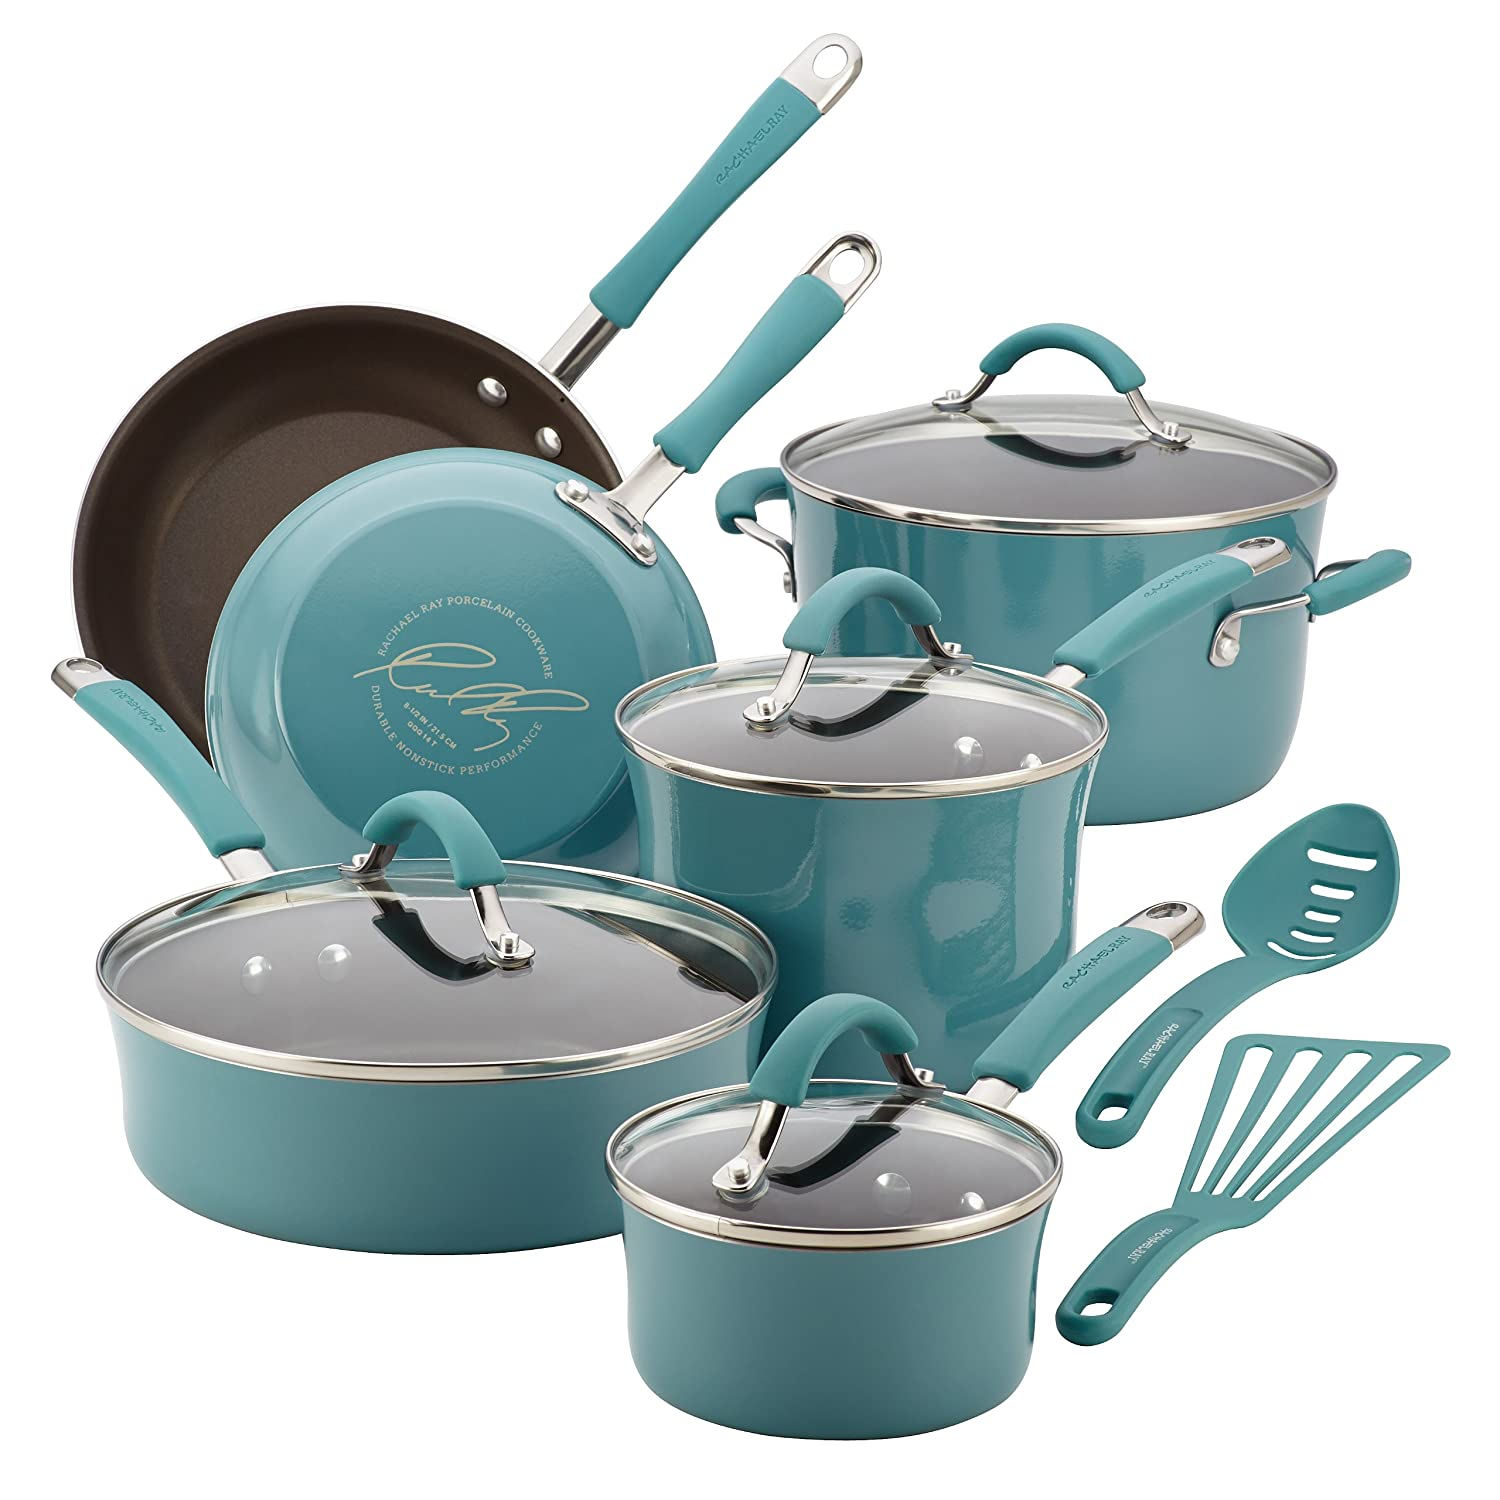 Amazon.com: Cookware Sets: Home & Kitchen: Nonstick Cookware Sets ...